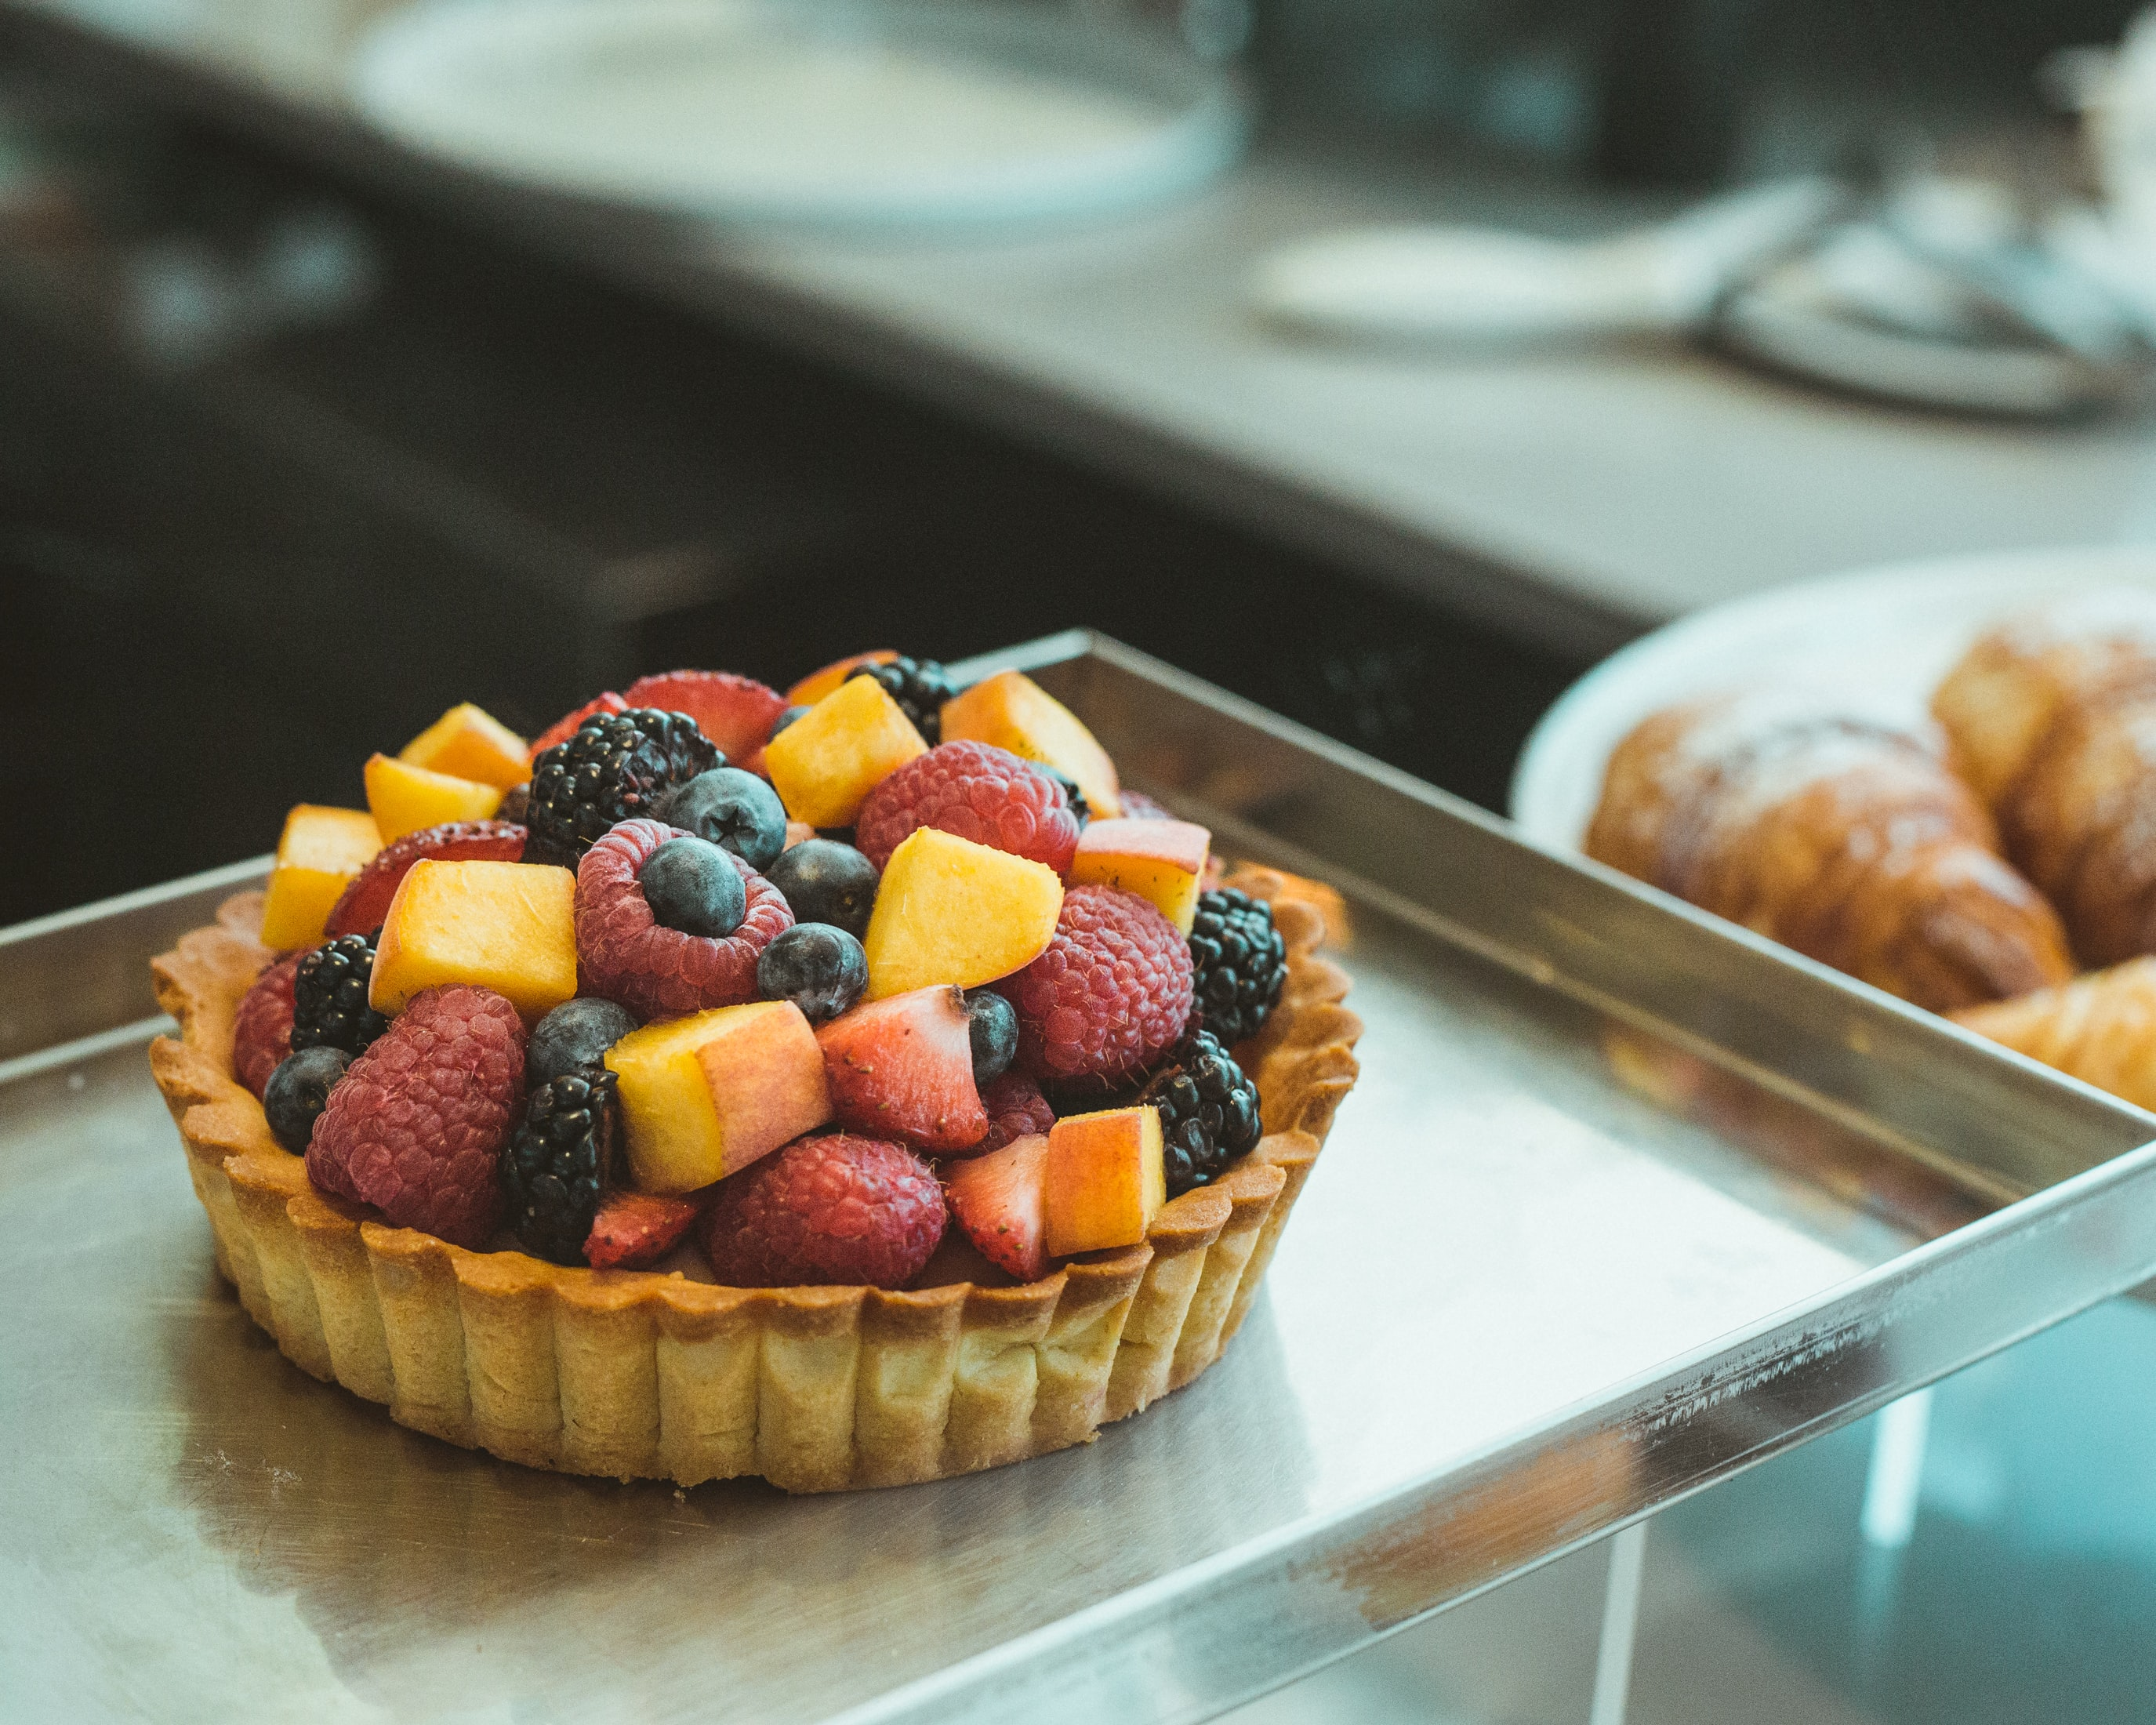 brown pastry with assorted fruits on top